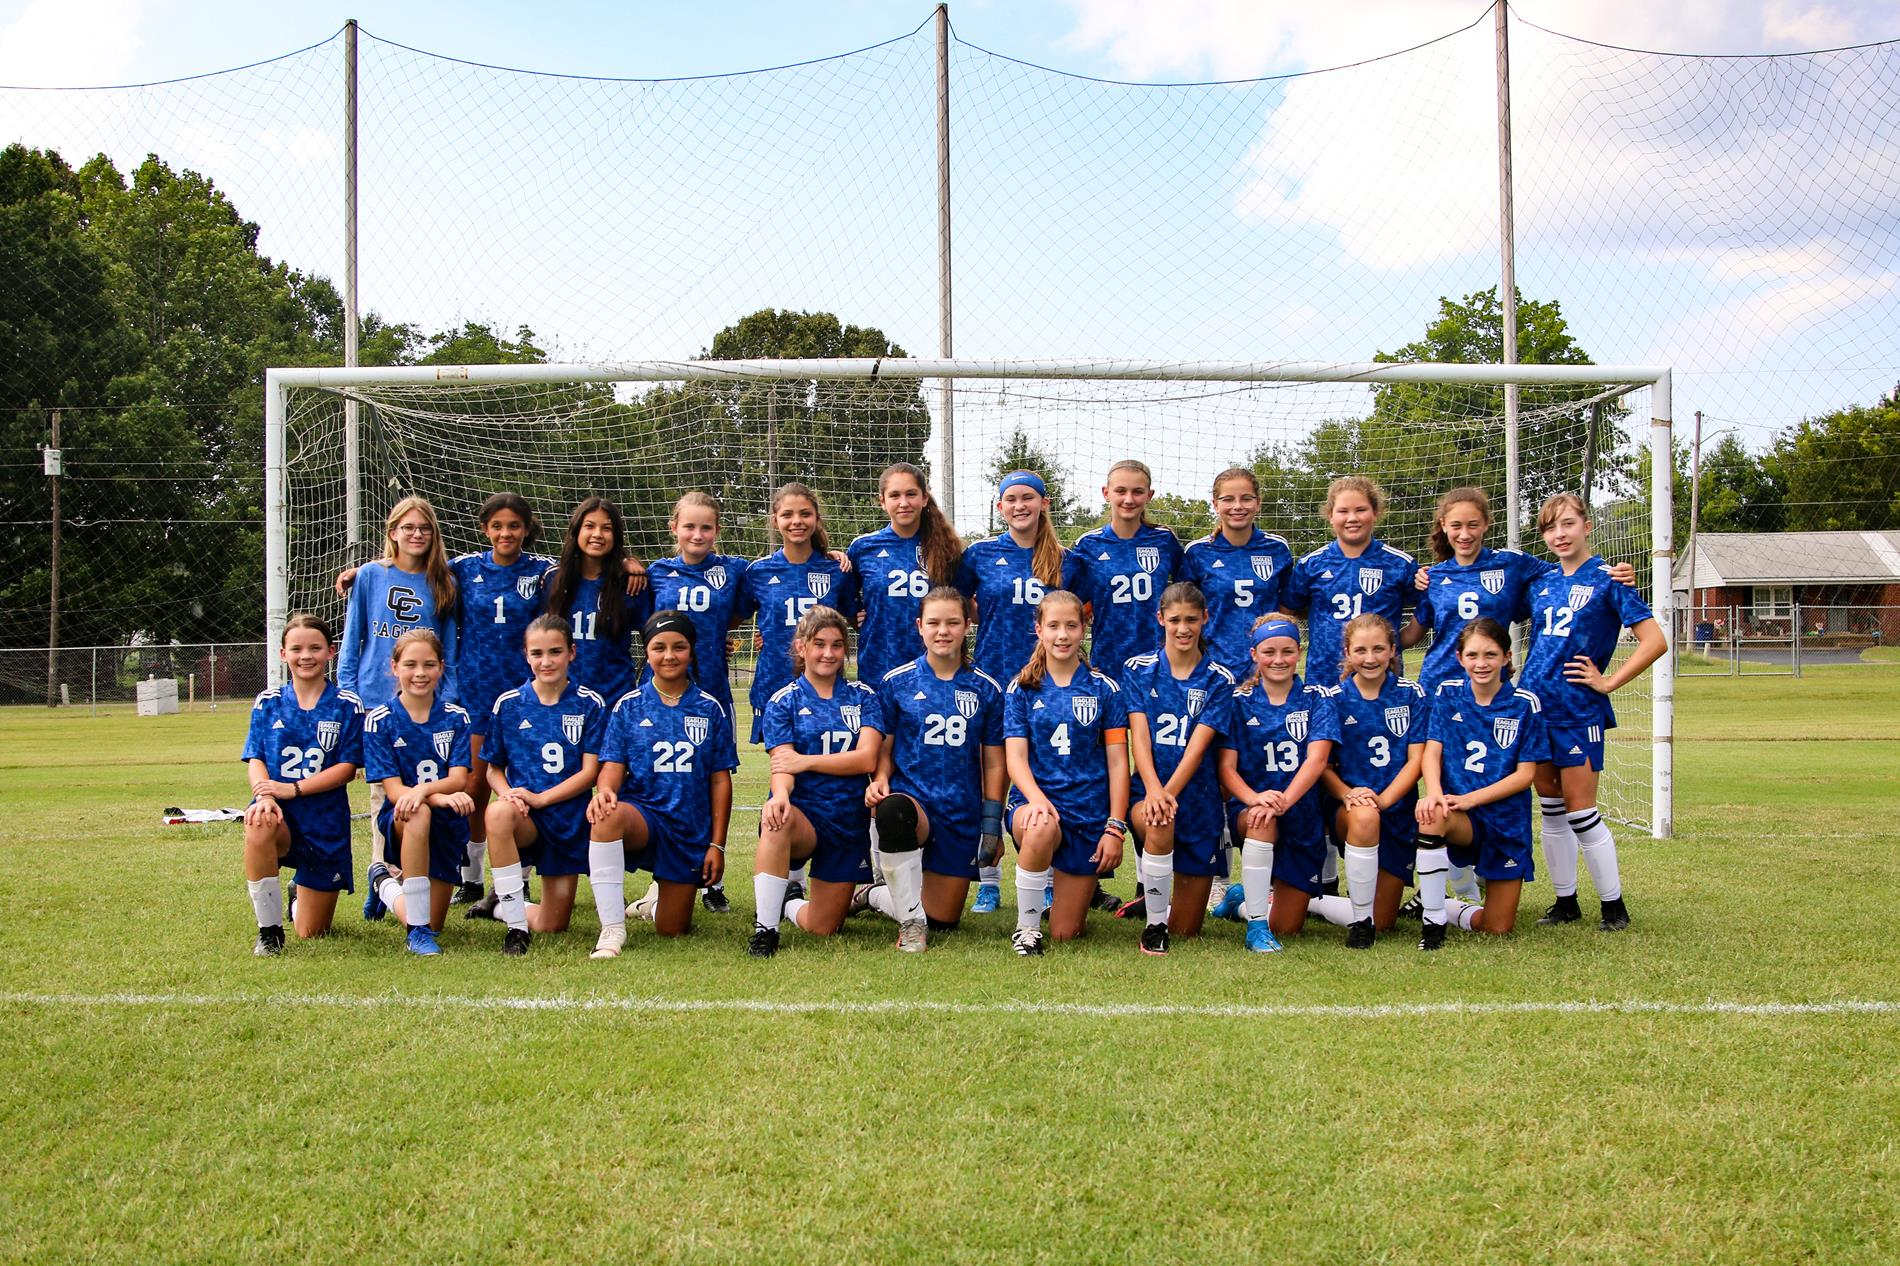 JH Girls Soccer Team Picture